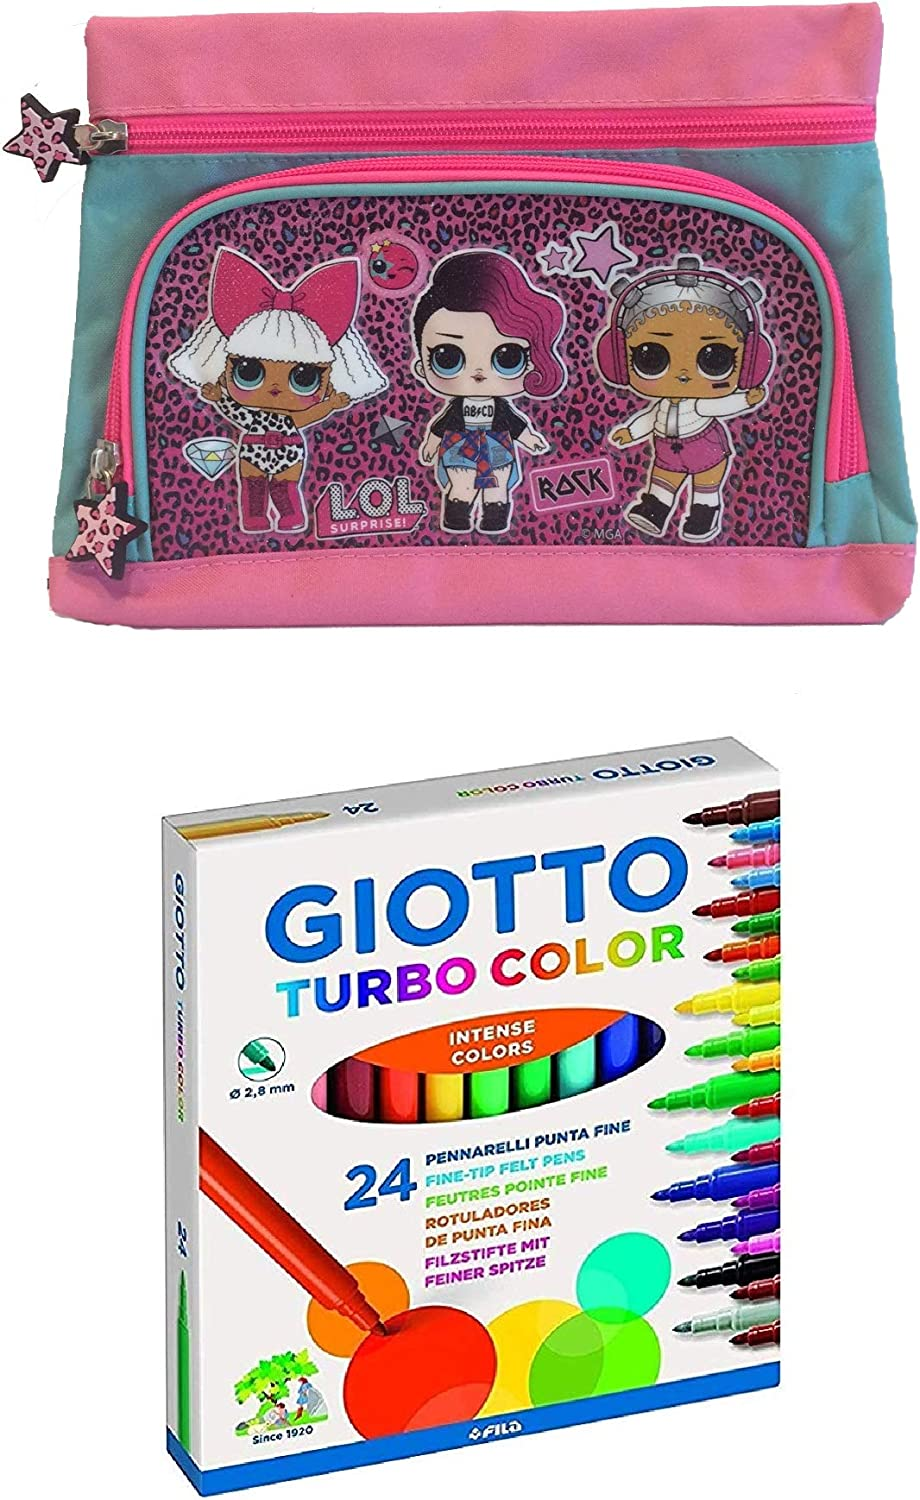 LOL SURPRISE L.O.L Surprise 2 Zips T Estuche de lápices con 24 Rotuladores Giotto Turbo Color Punta Fina Kit Escolar Infantil: Amazon.es: Juguetes y juegos